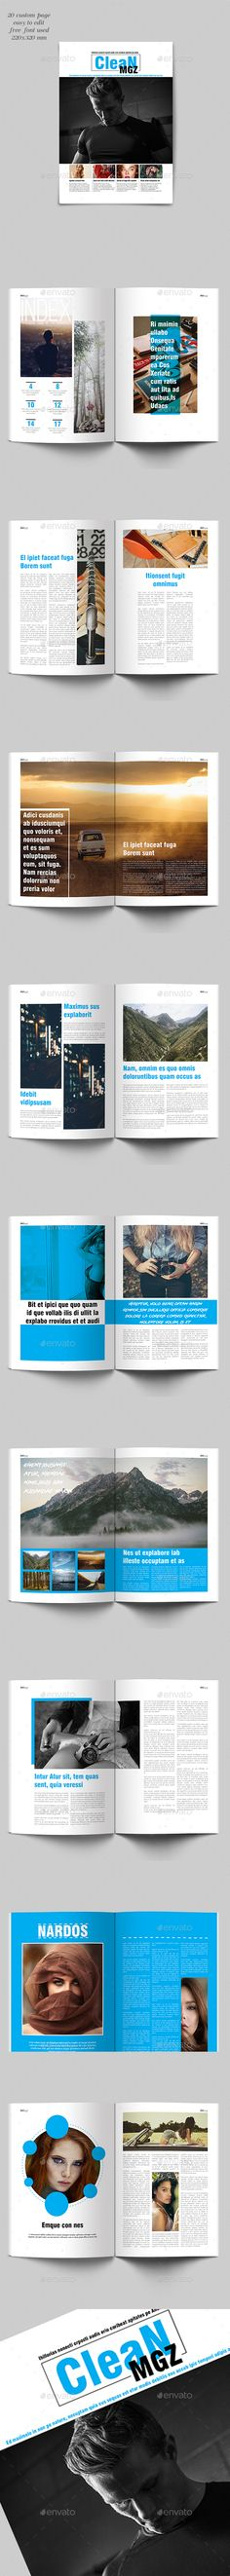 Clean Magazine Template InDesign INDD